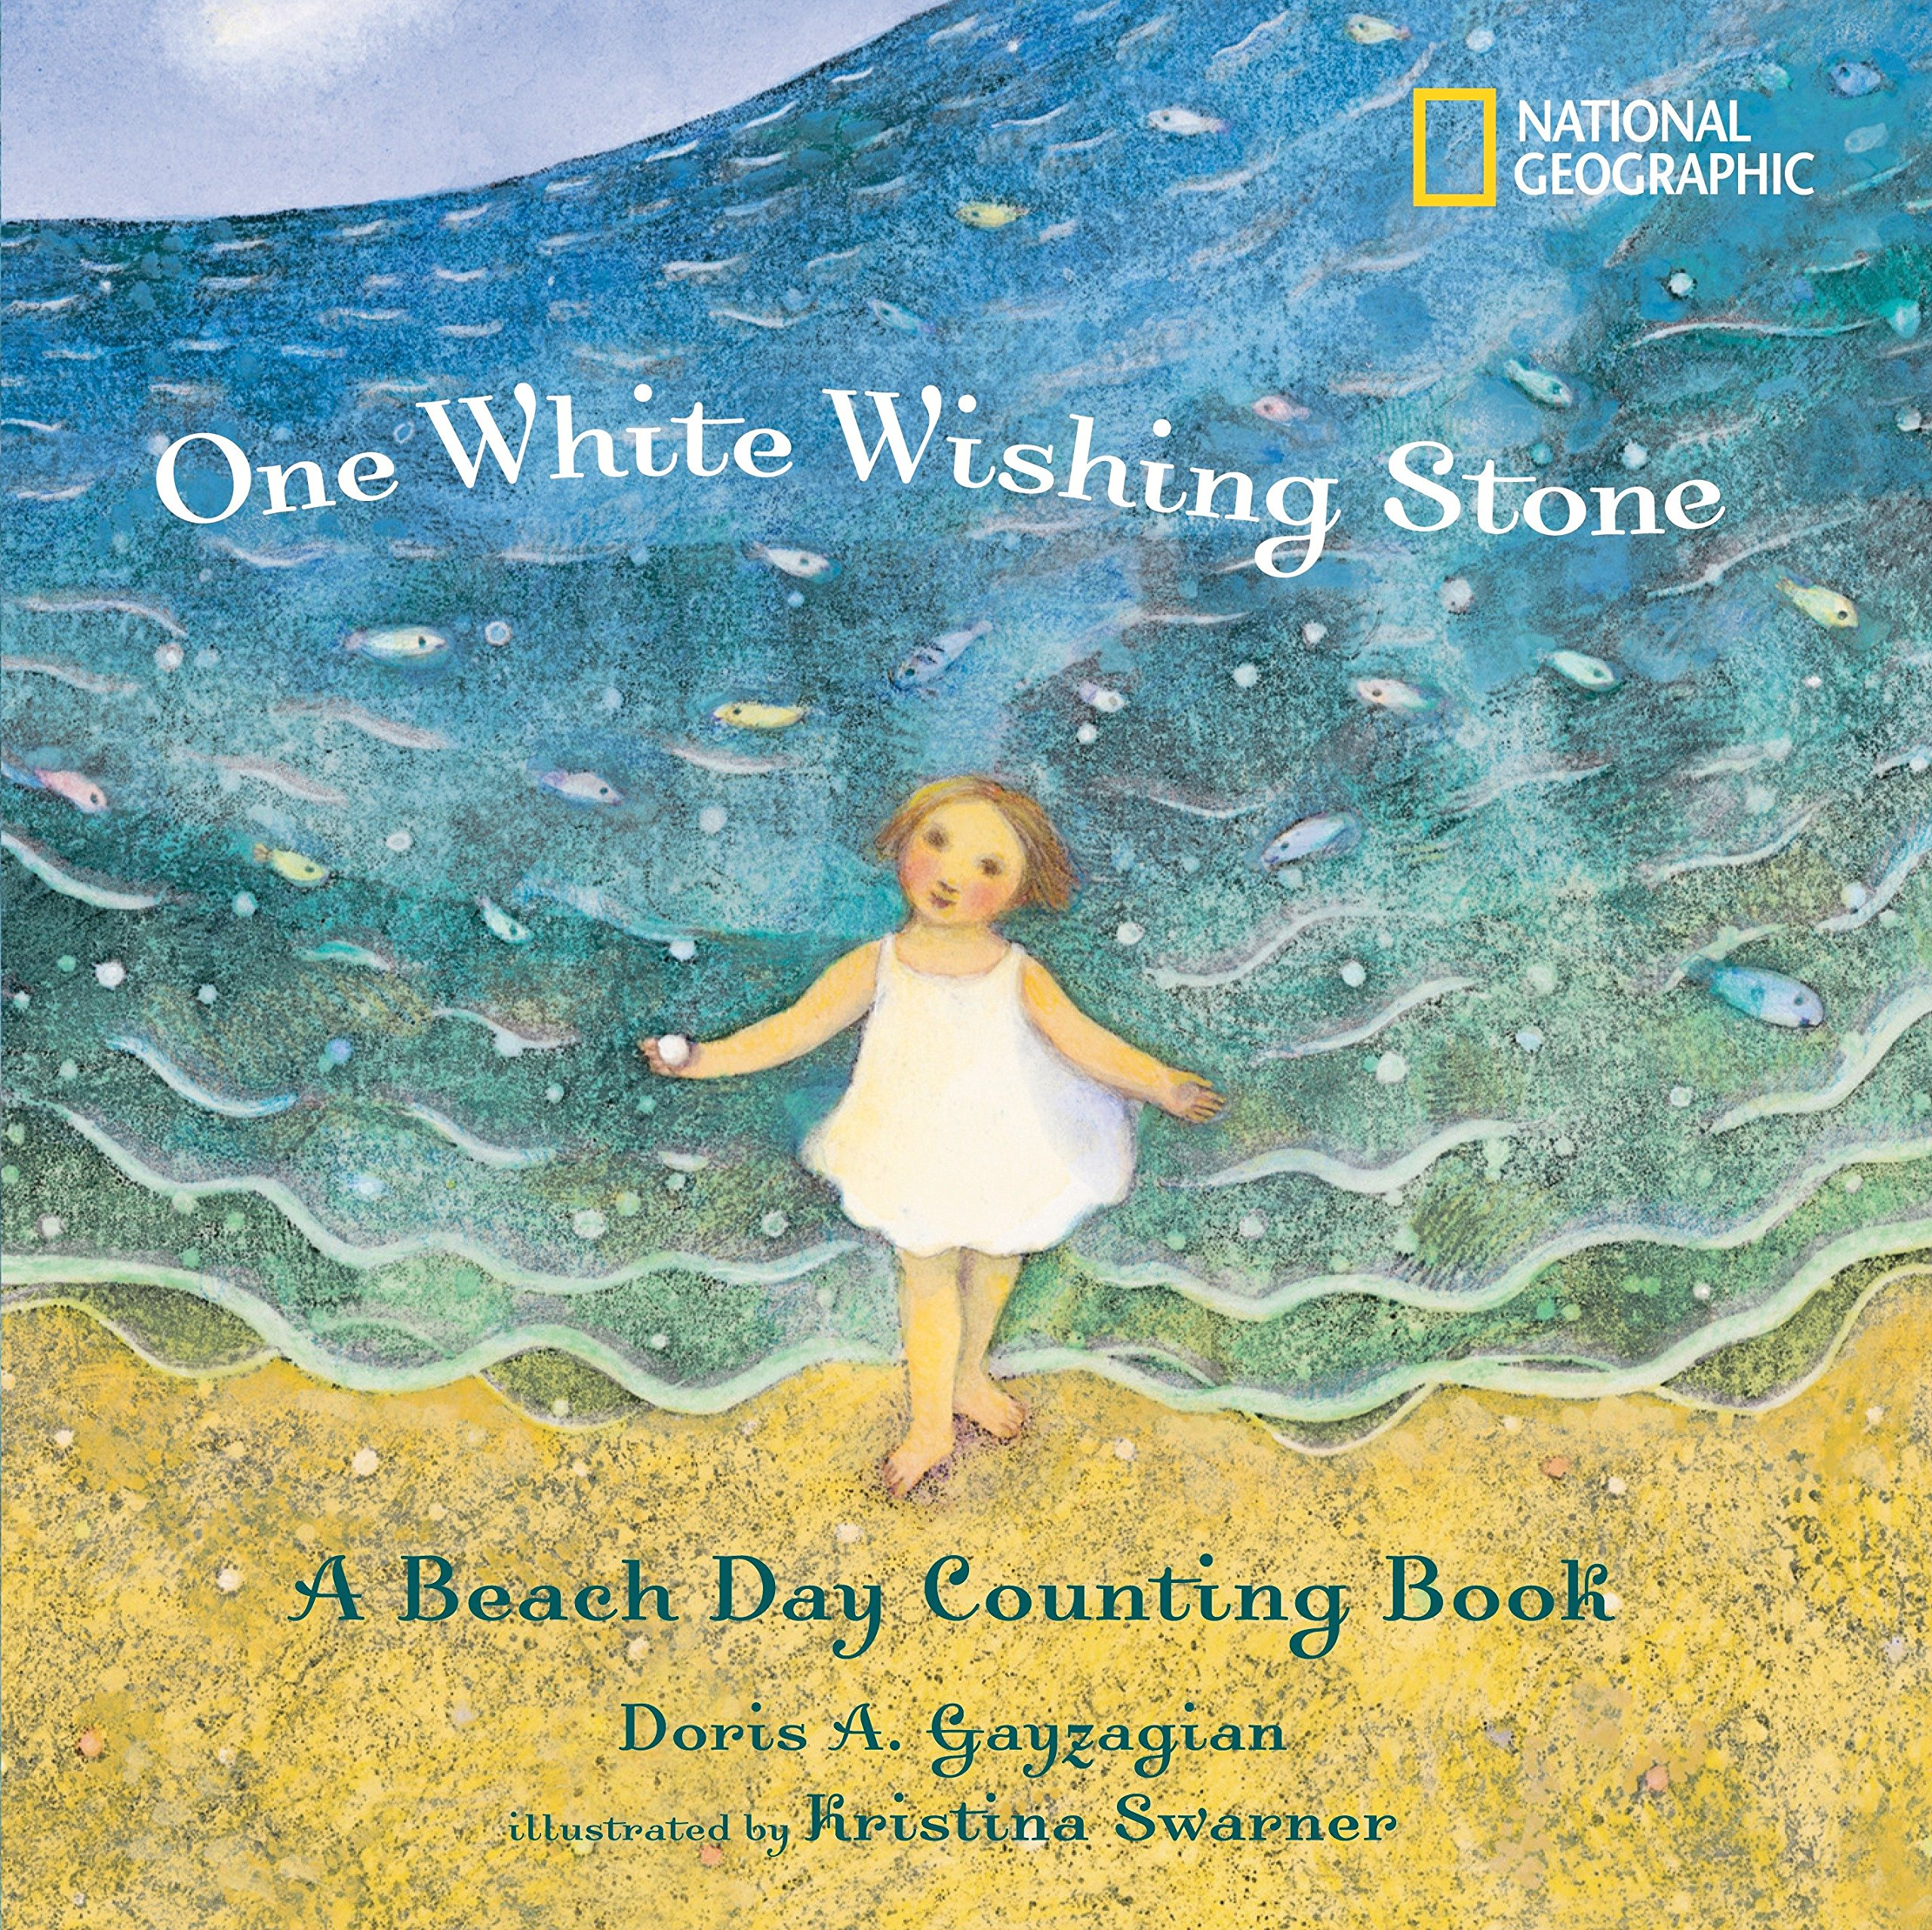 One White Wishing Stone: A Beach Day Counting Book pdf